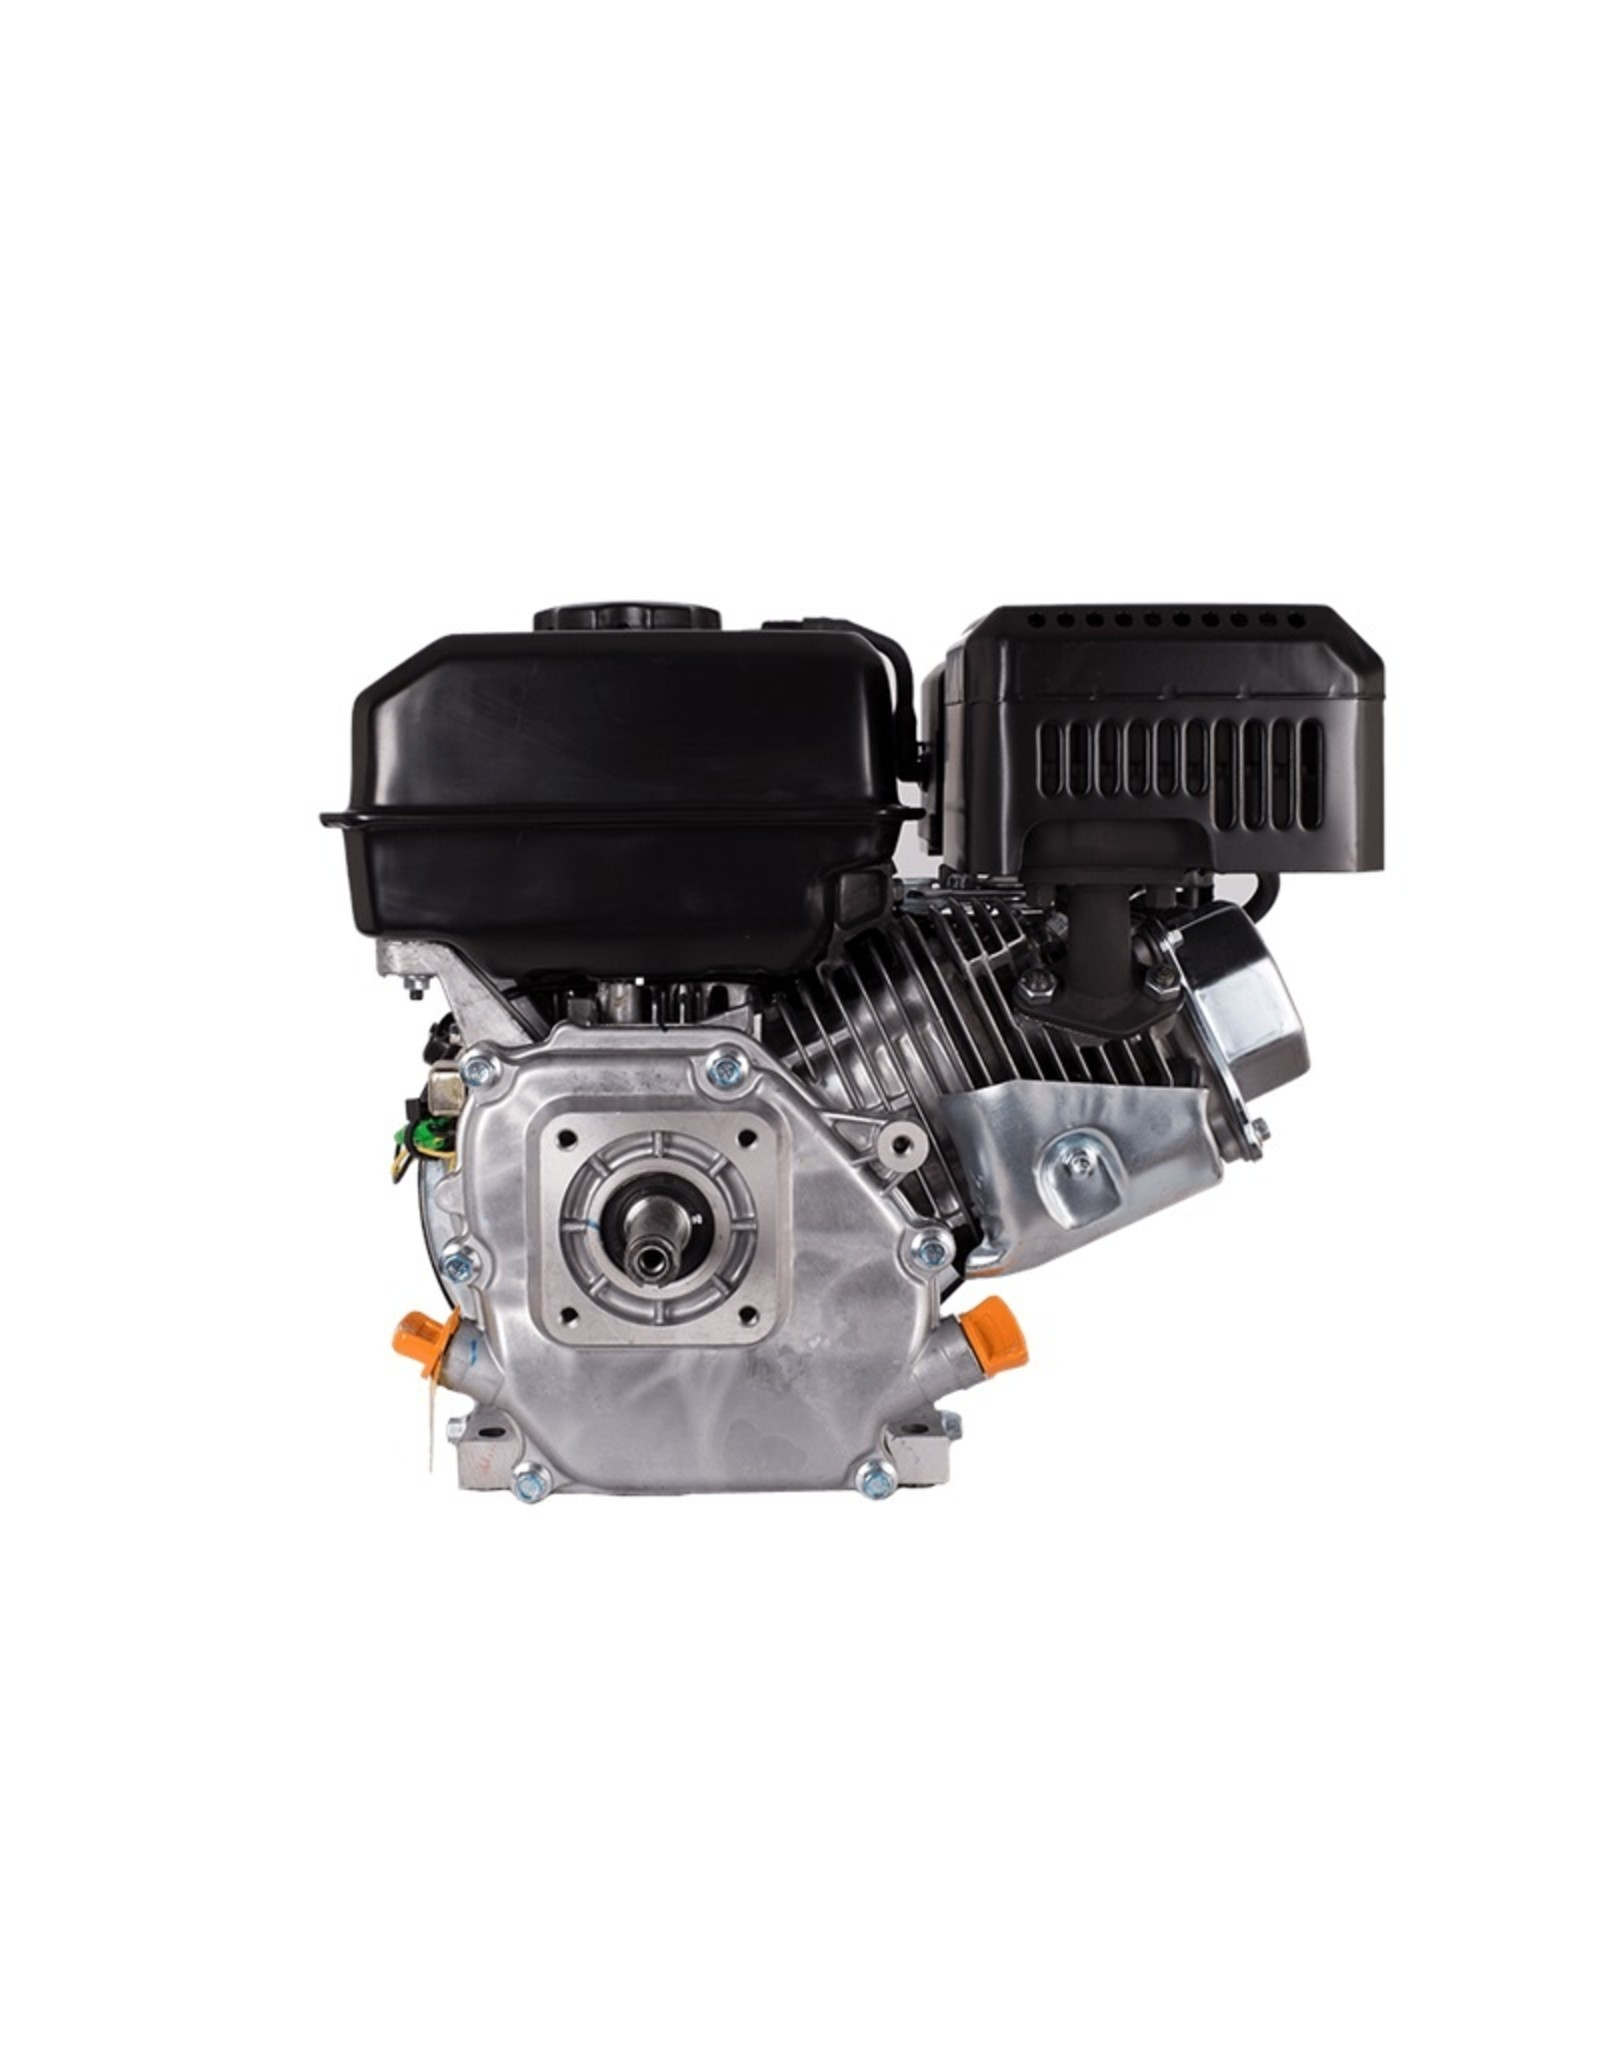 BE 85.570.070 Power/Ease 225CC Engine